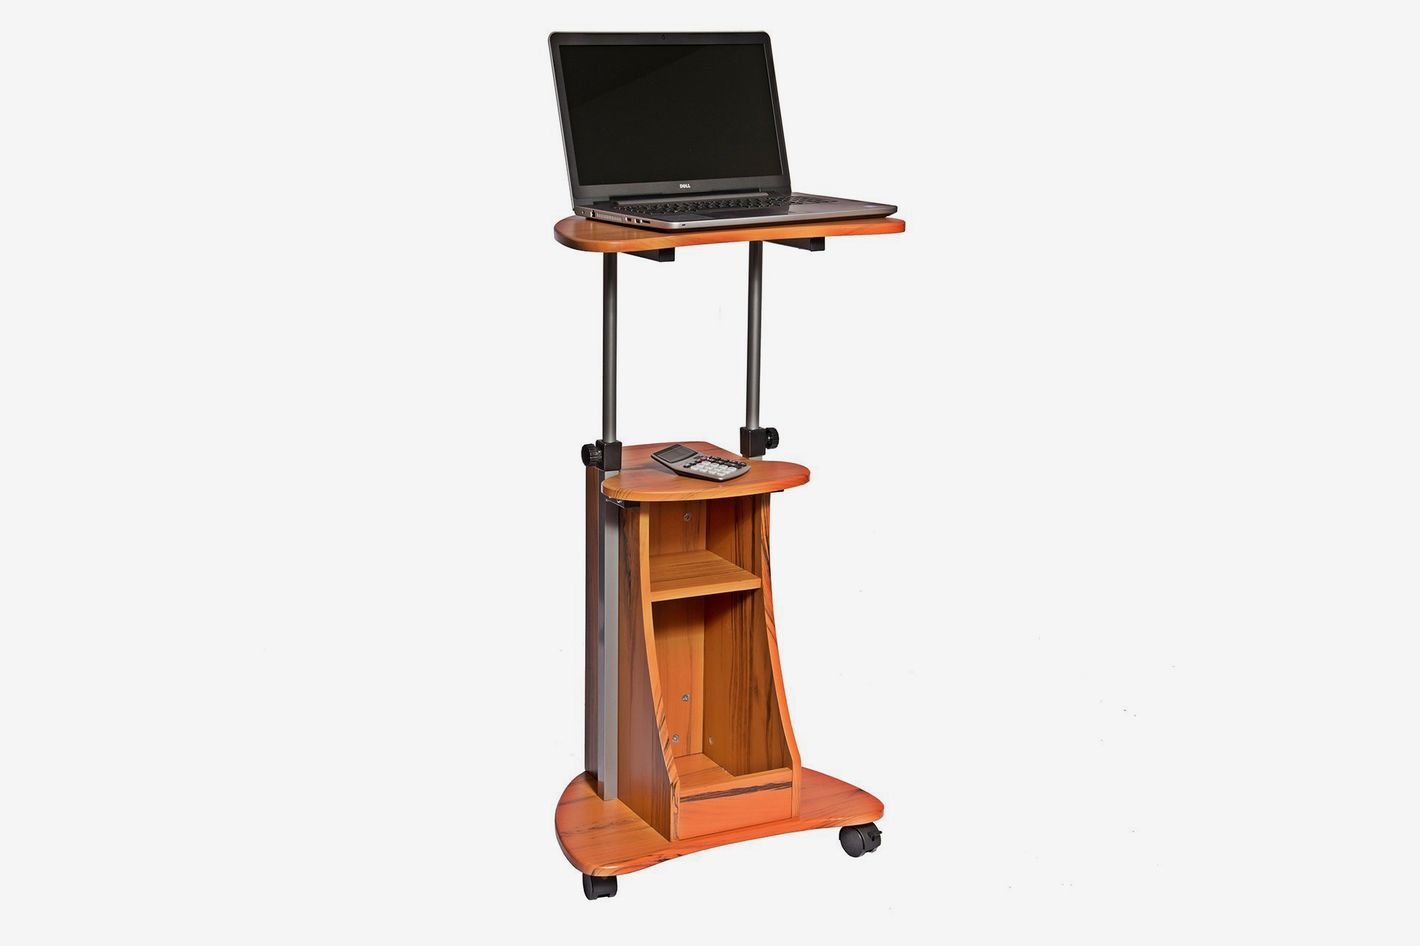 Techni Mobili Adjustable Height Laptop Cart Storage